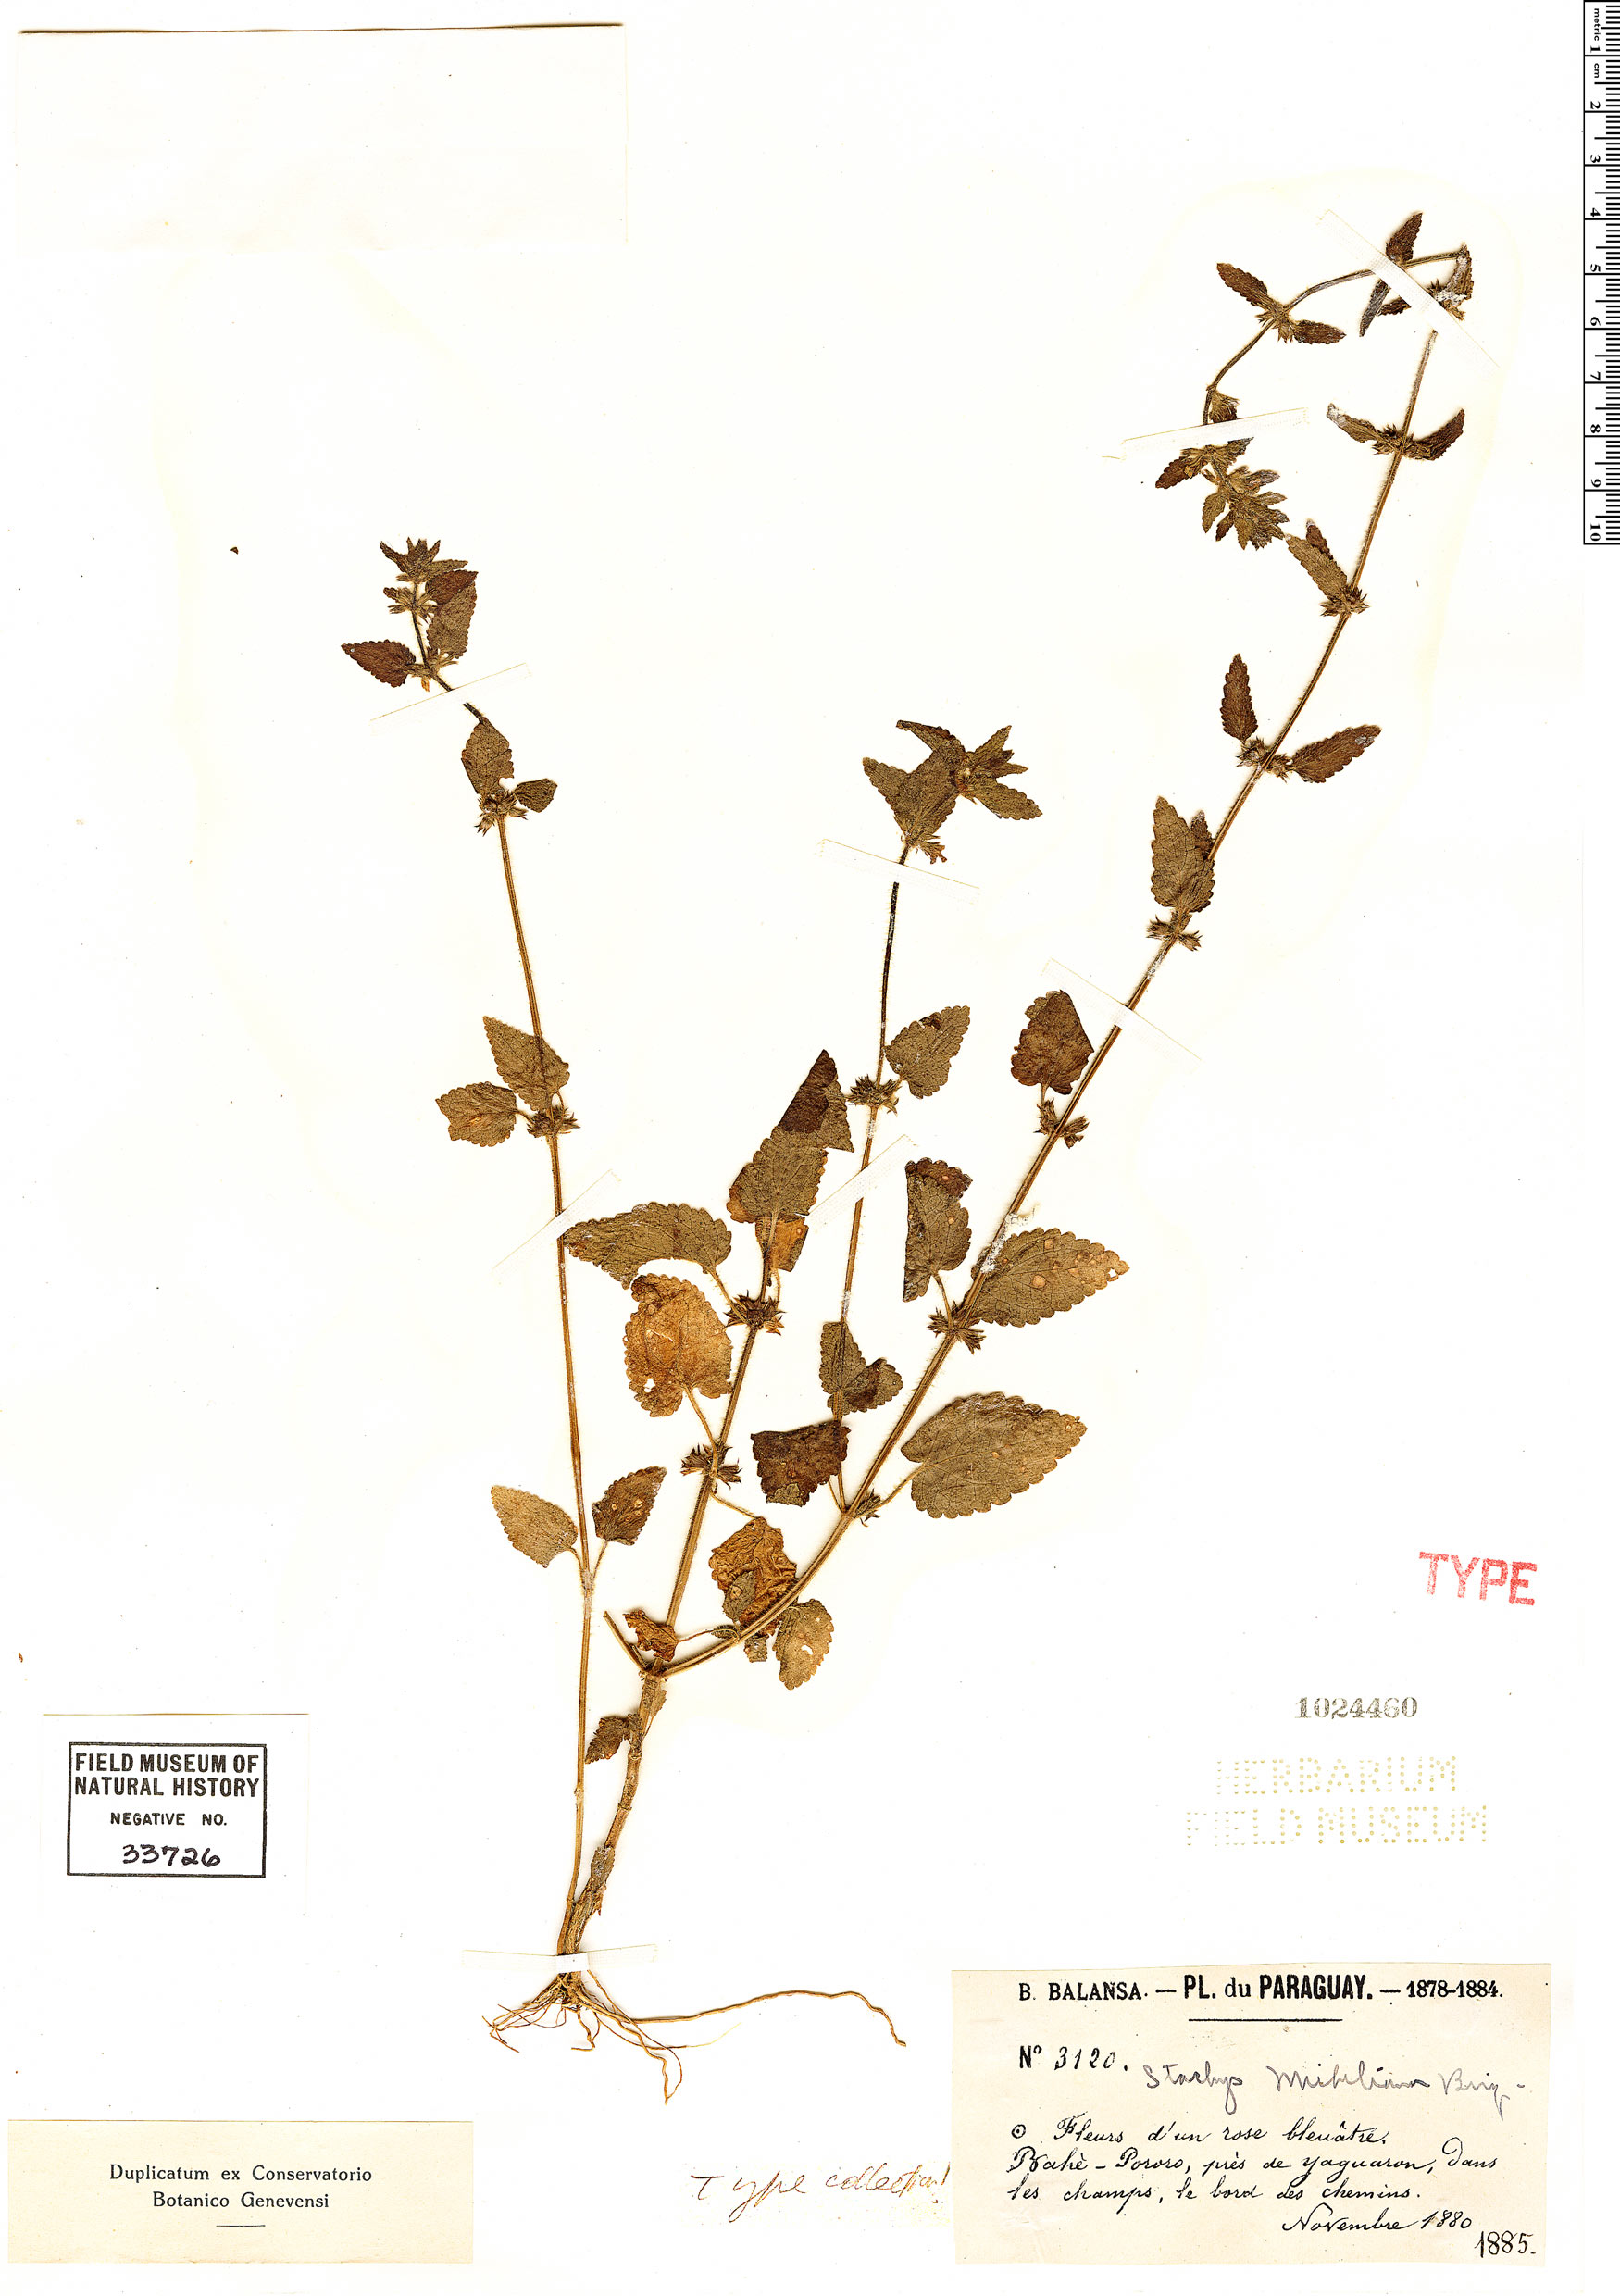 Specimen: Stachys micheliana